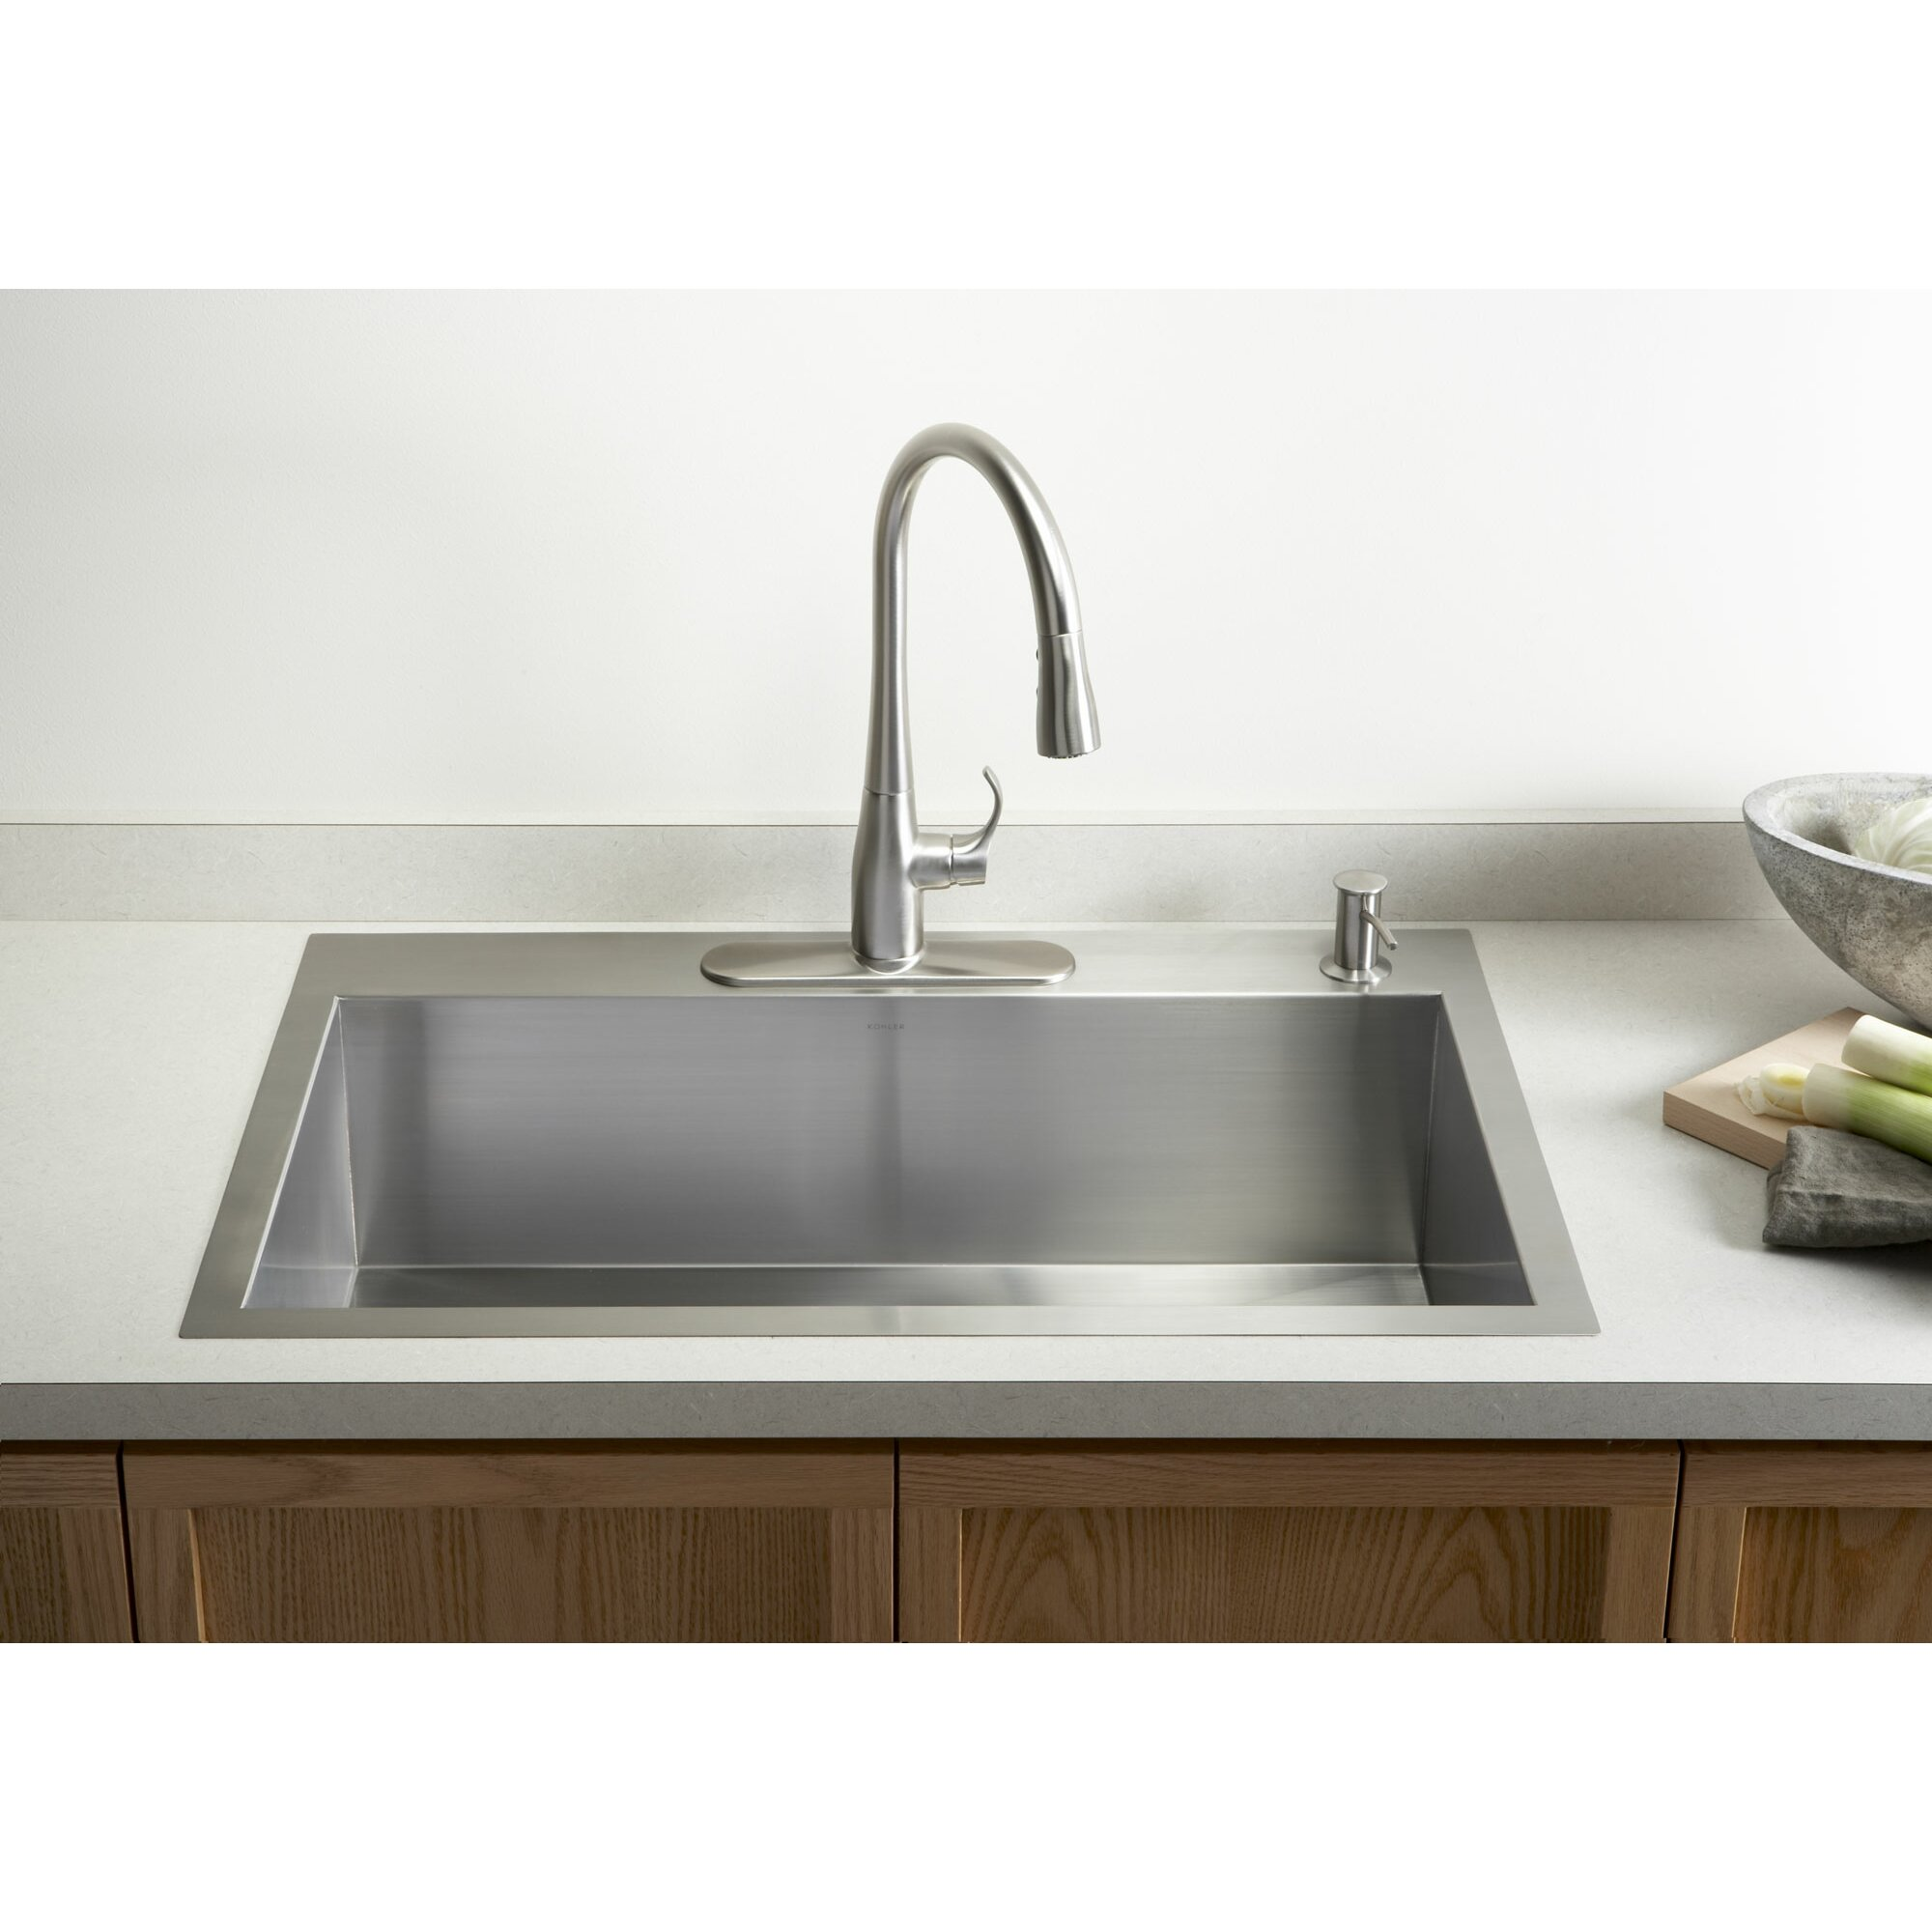 ... Stainless Steel Kitchen Sinks 7 Sinks Top Mount Photos House. Yive.co